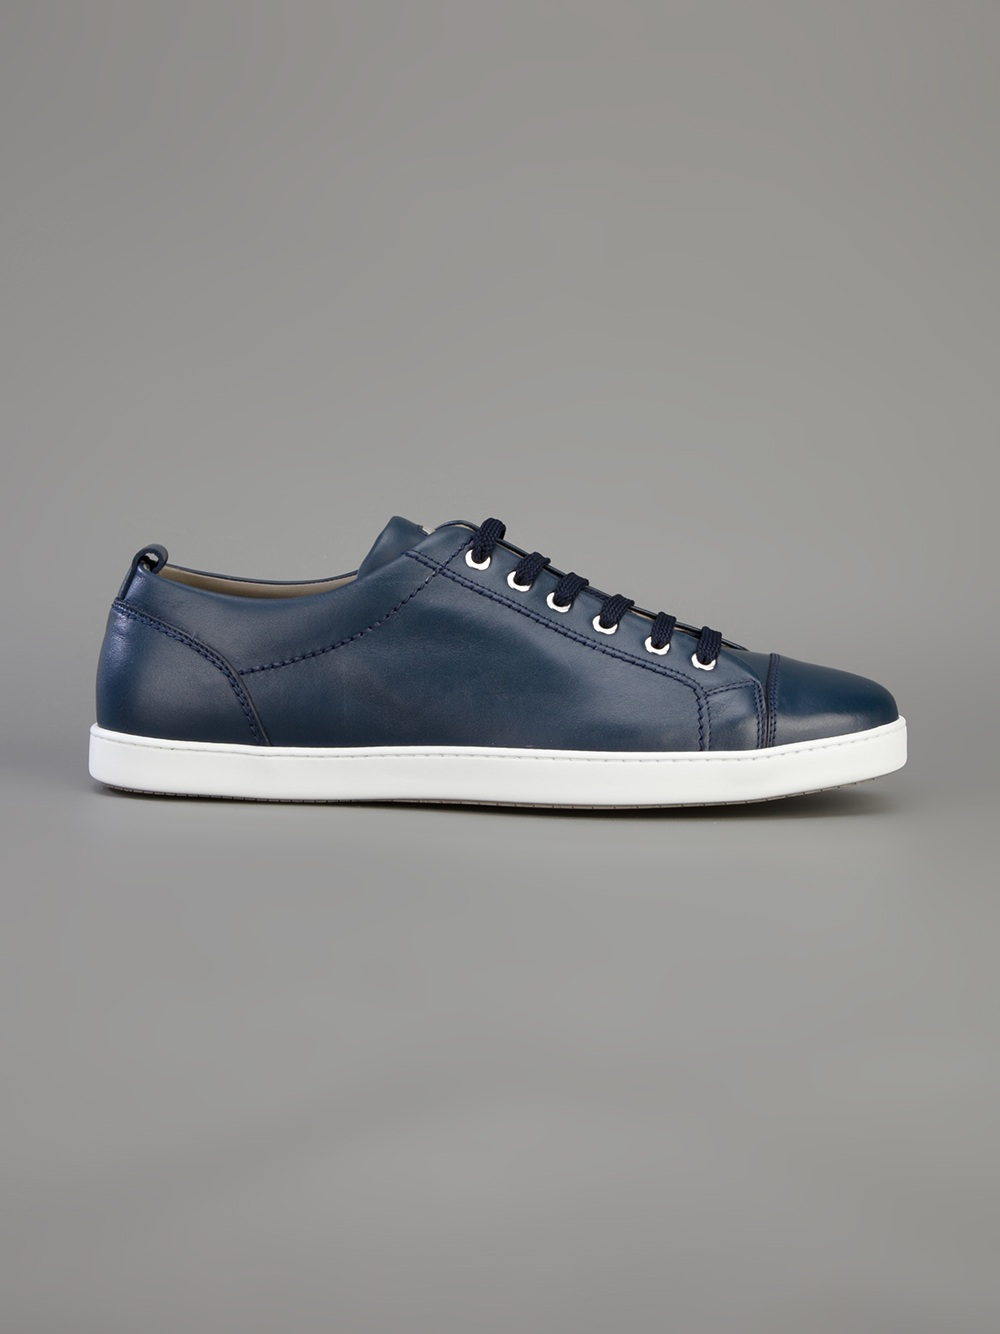 Brioni Leather Lace Up Sneakers In Blue For Men Lyst